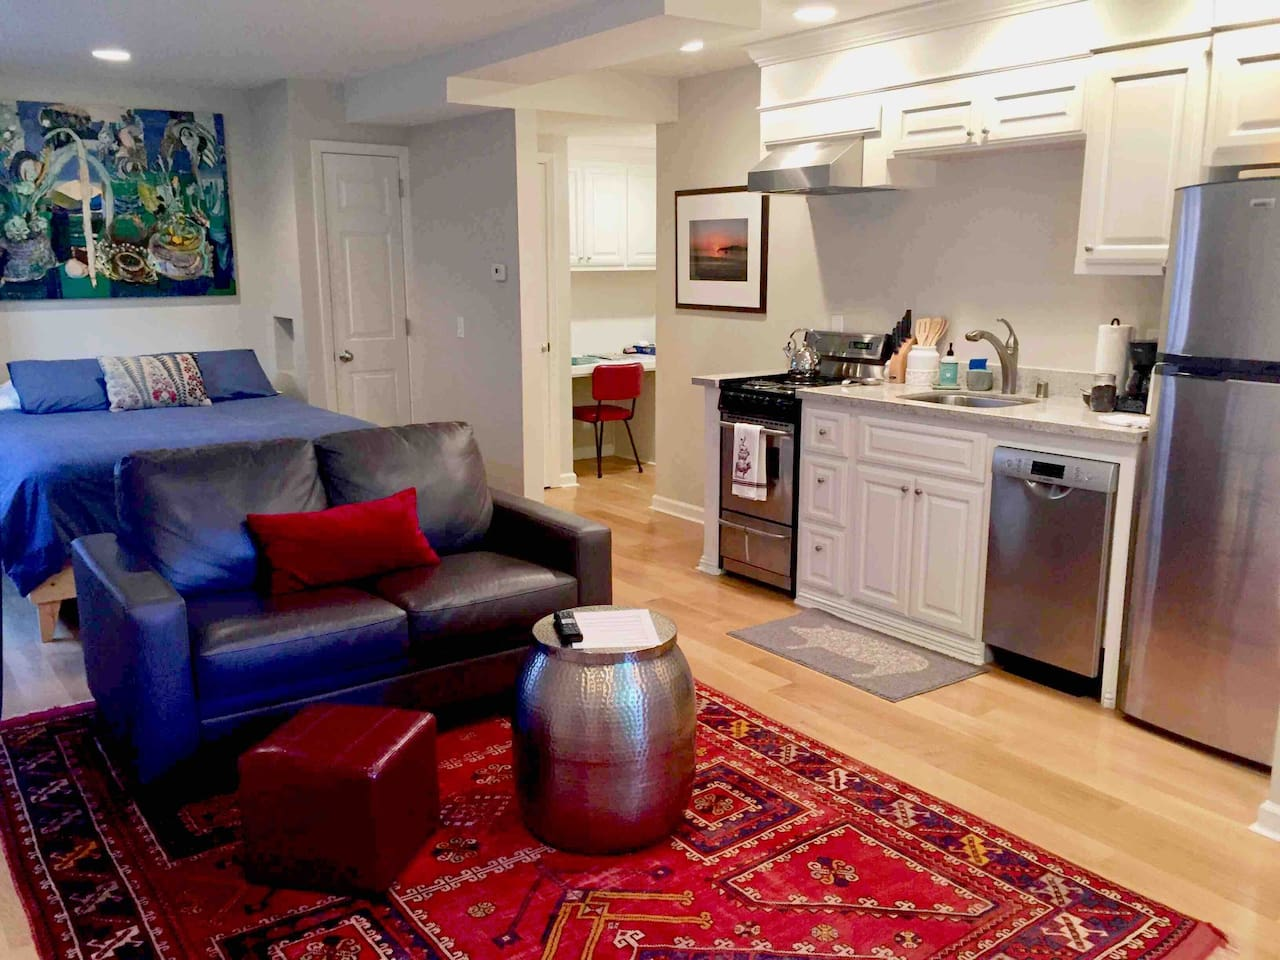 Studio G, a tranquil and private place to stay with lovely views of the garden, just a walk away from the beach and Pillar Point Harbor which offers several fine restaurants and fun activities.   Sit at the window, enjoy the garden & bird activity.